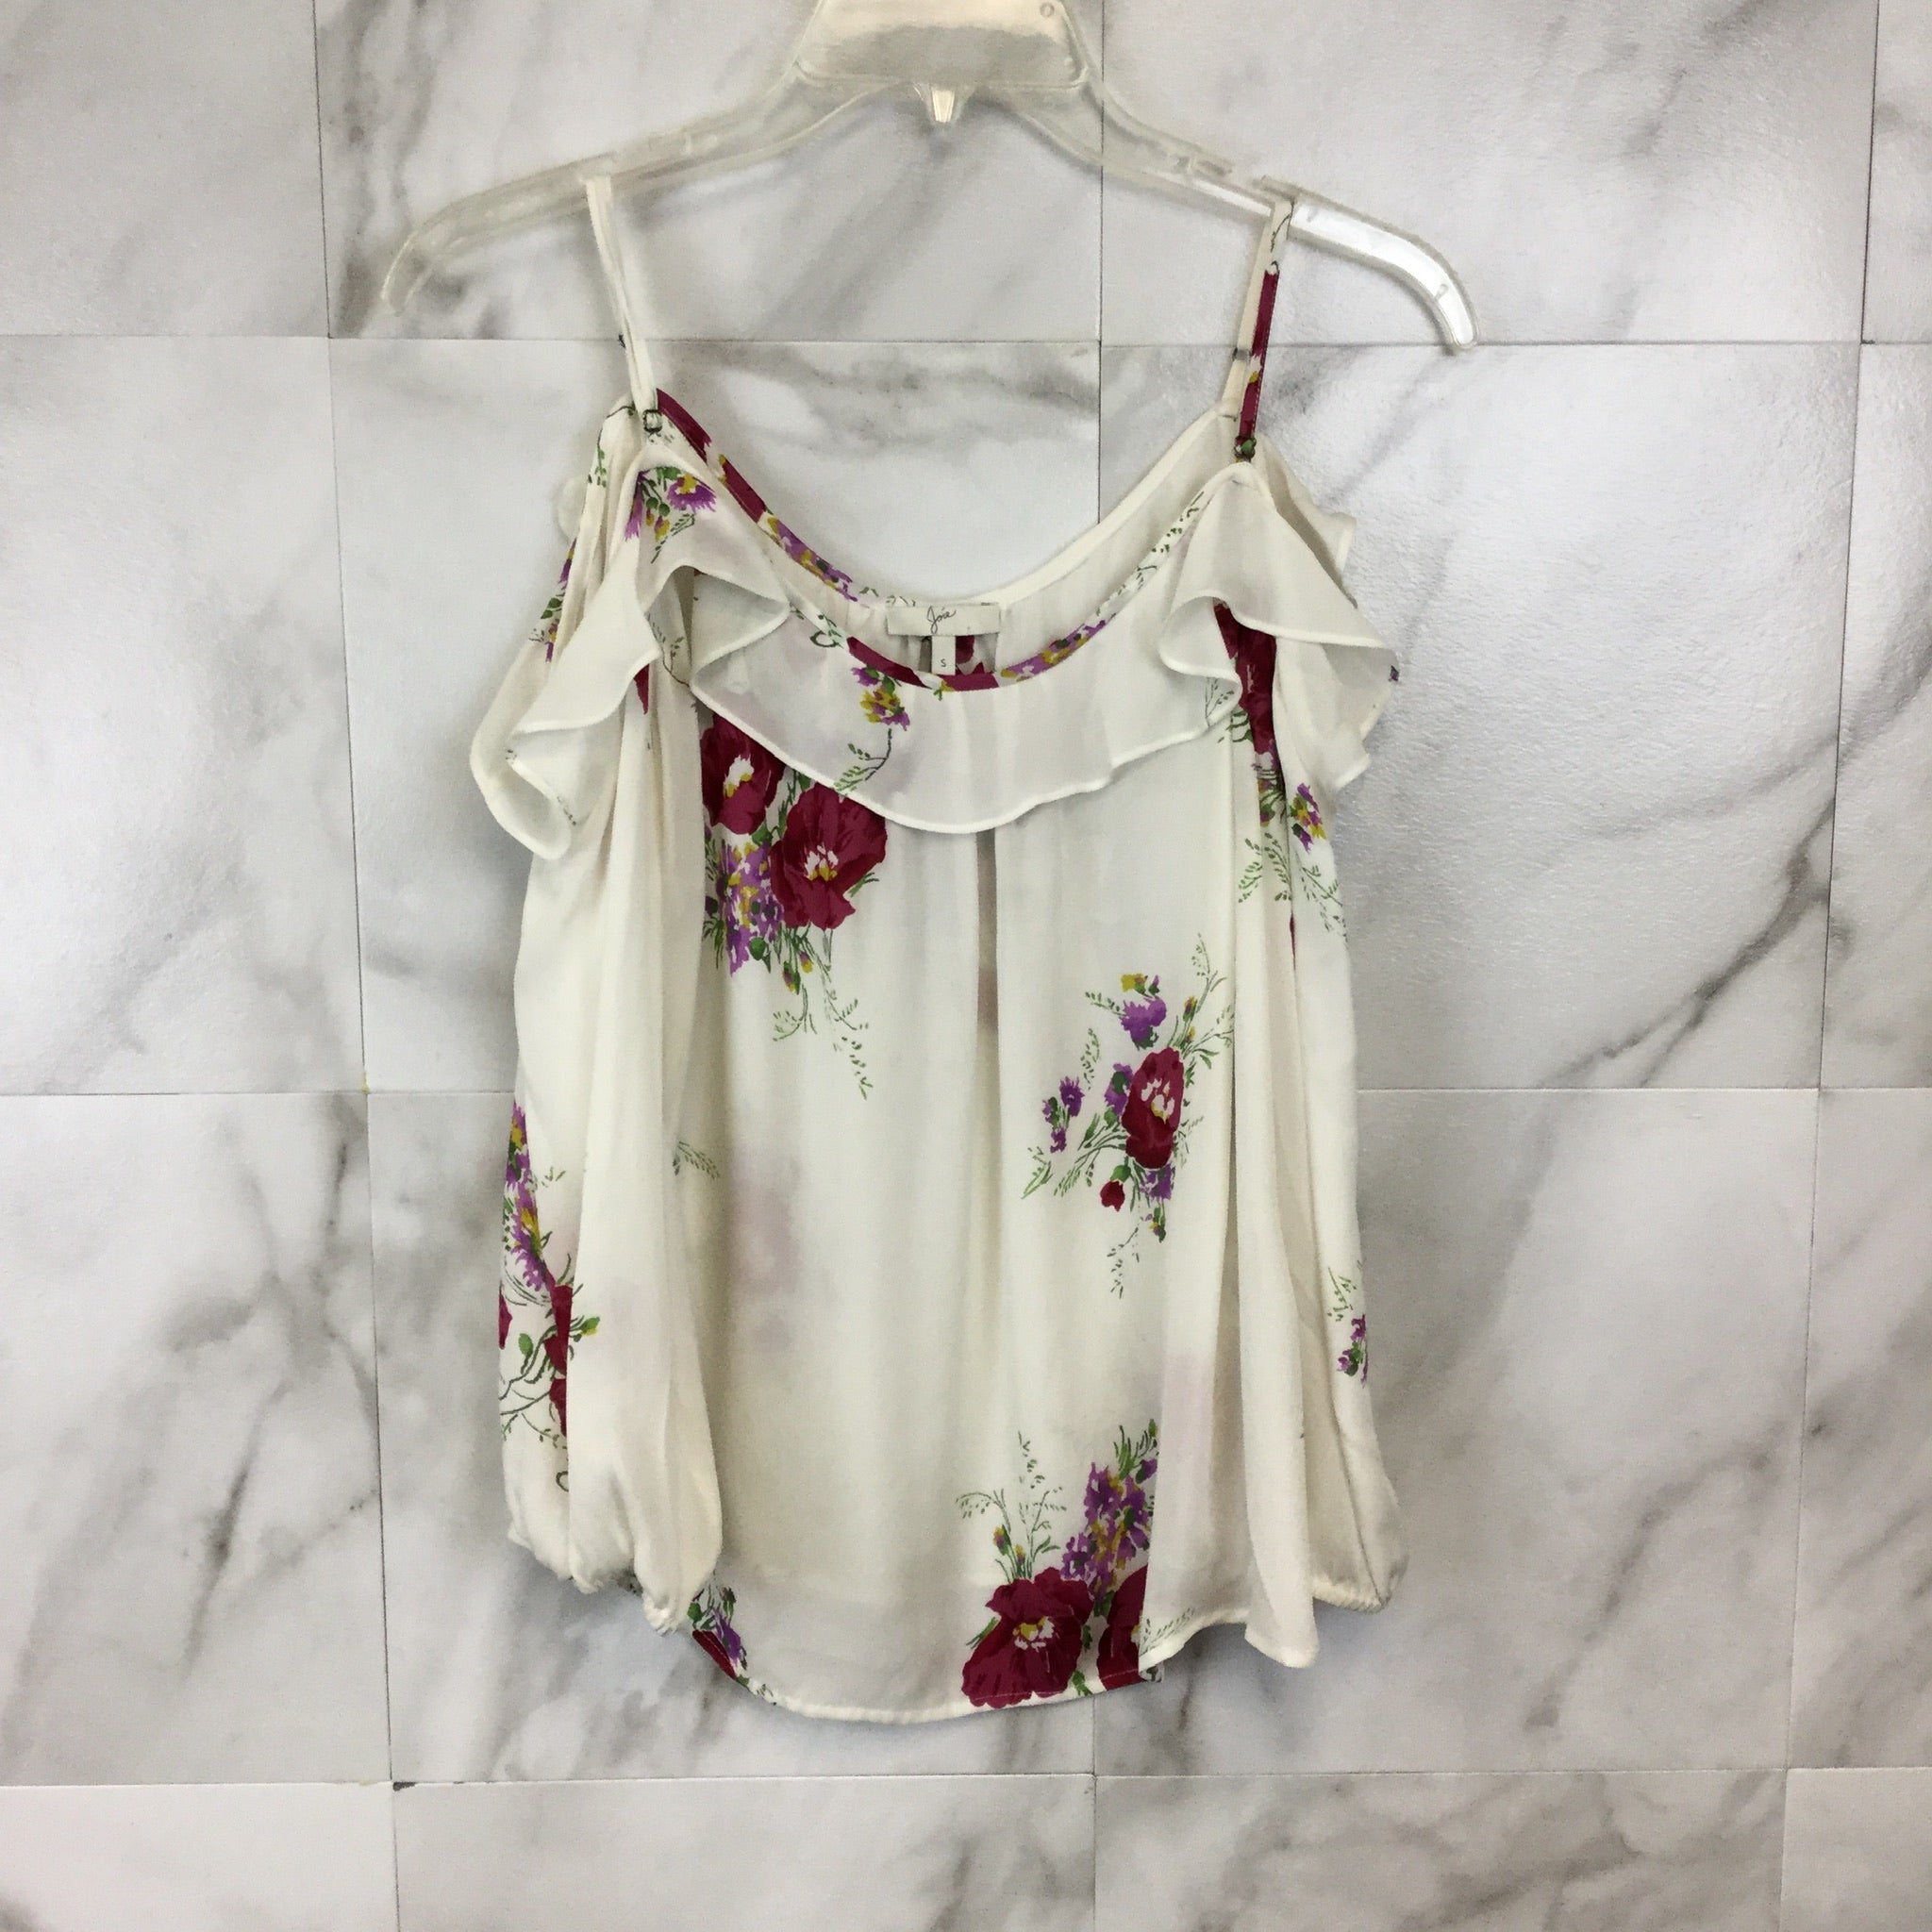 Joie Birtha Cold-Shoulder Top - size S